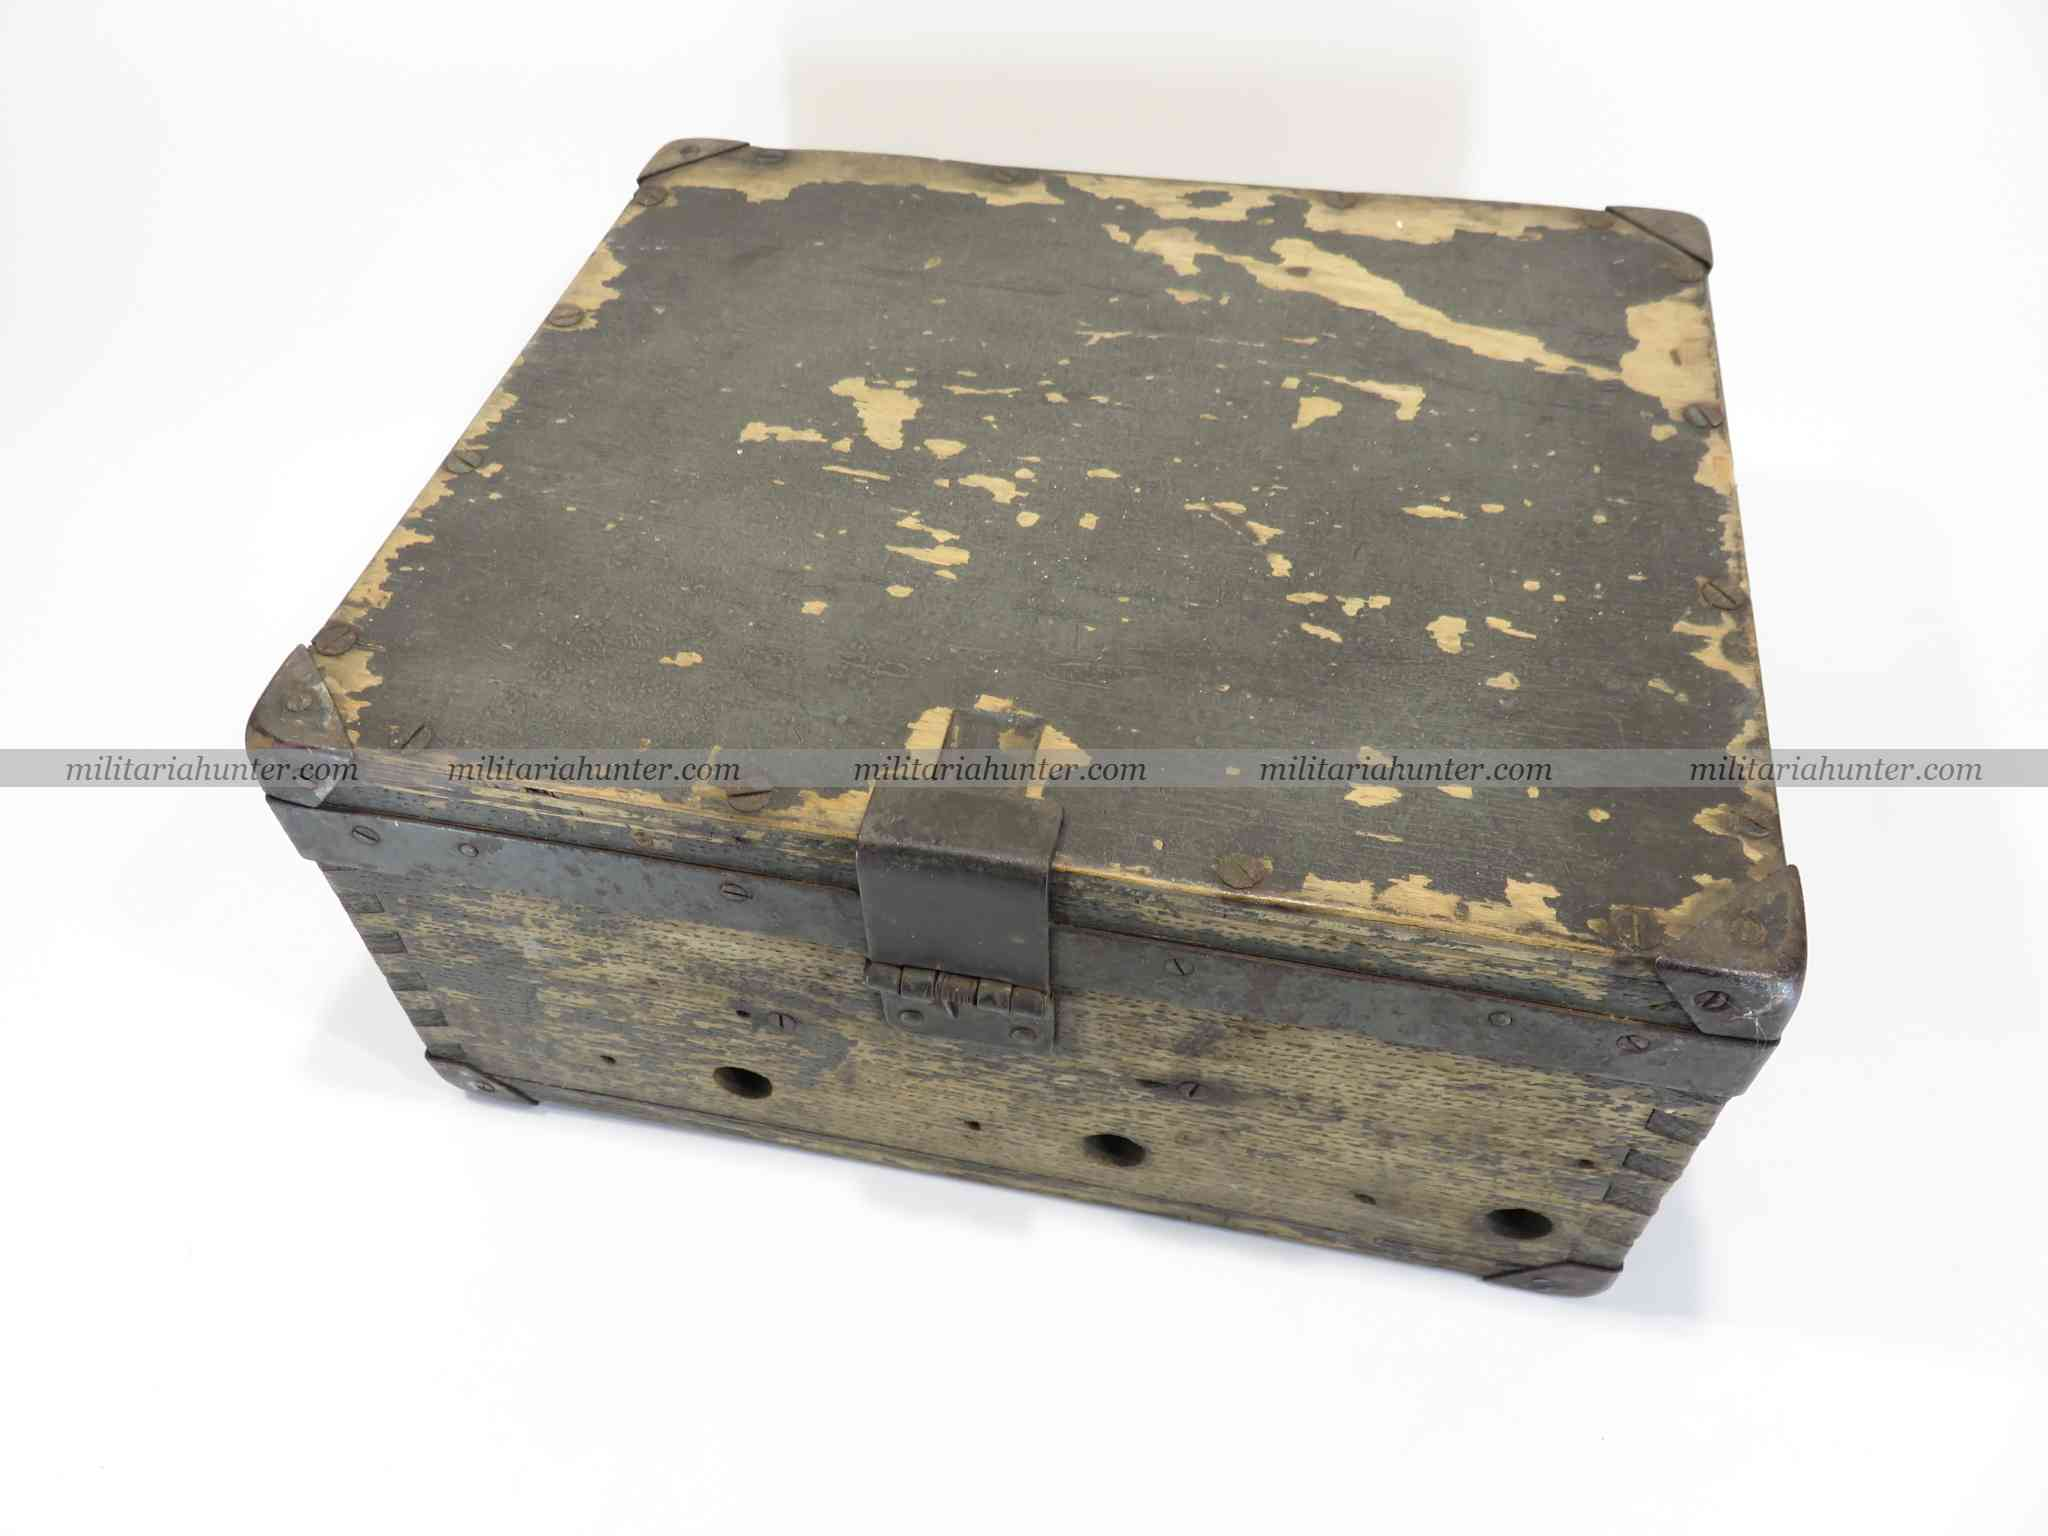 militaria : ww1 german L. Blink 17 projector battery box - boîte à batteries projecteur